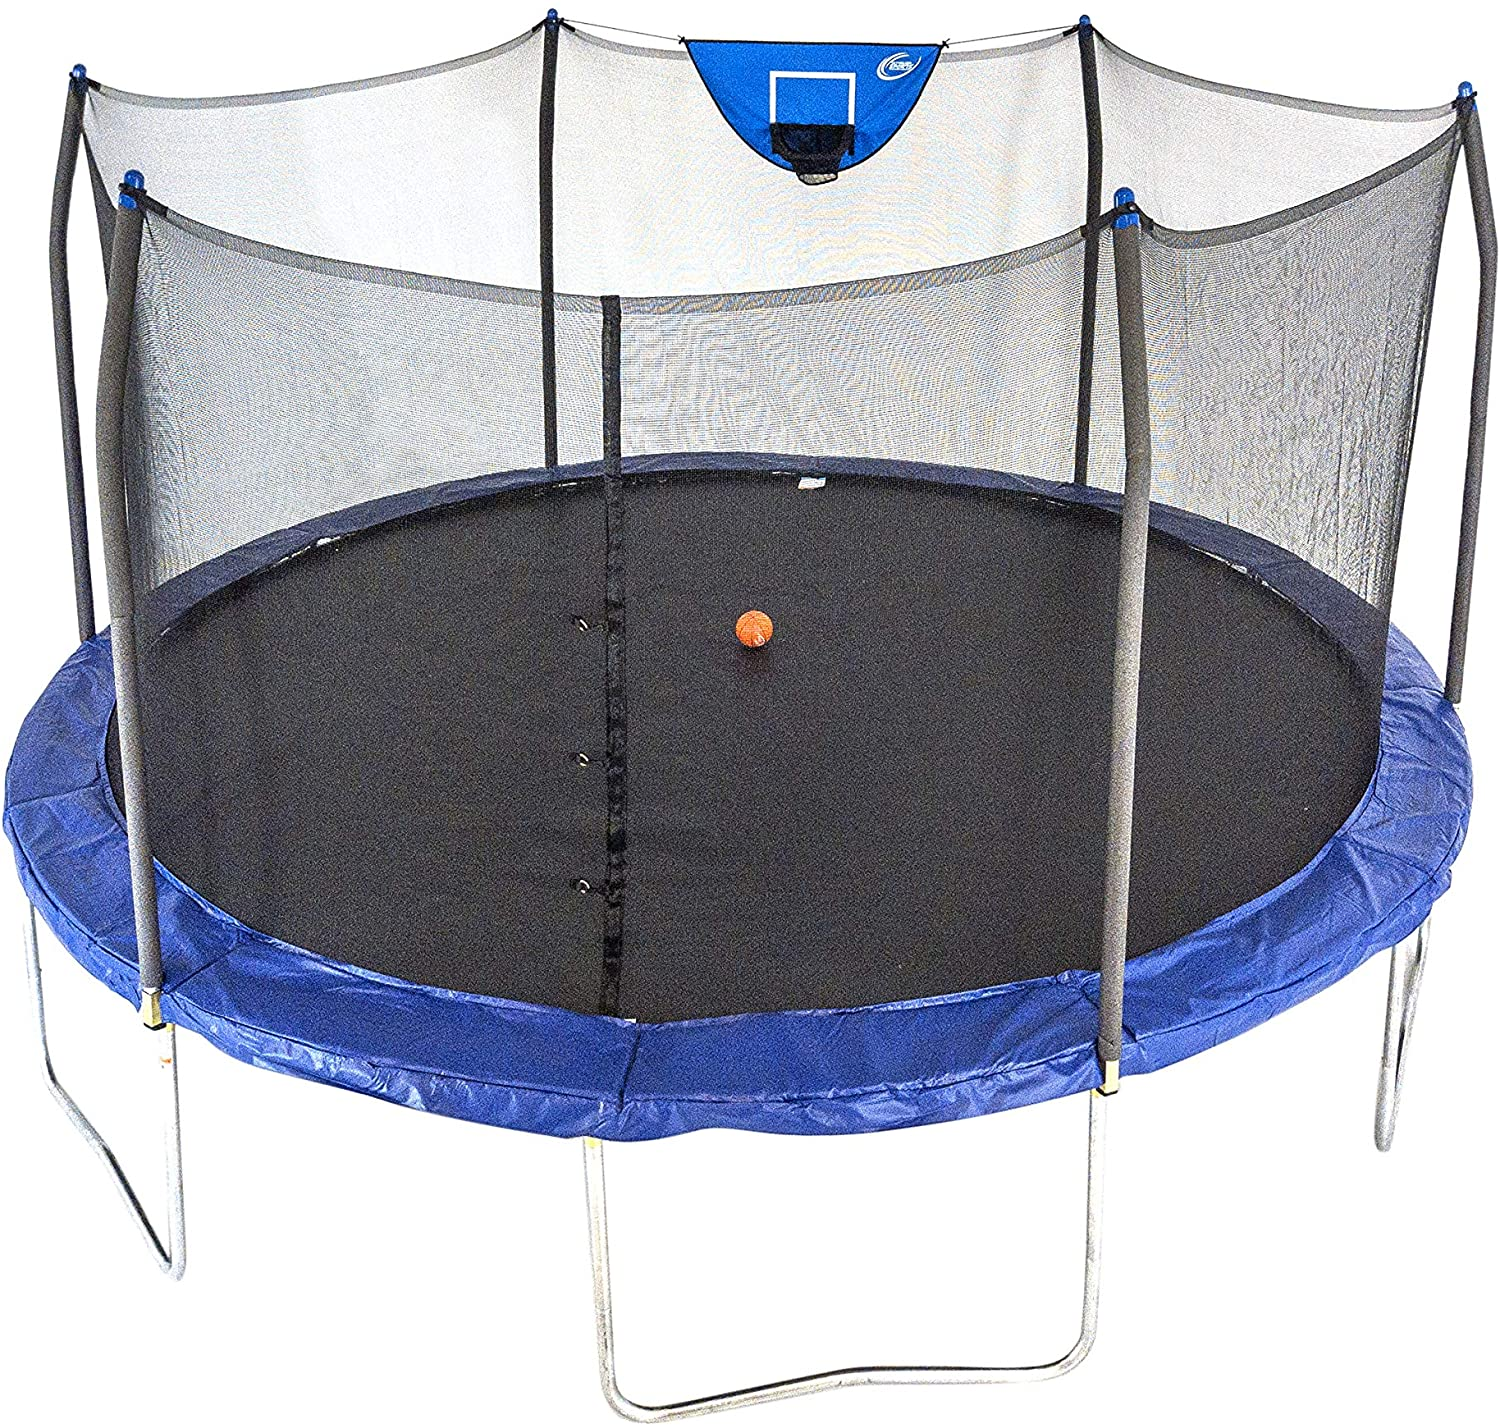 Skywalker Jump N' Dunk Basketball Enclosure Net Trampoline, 15-Feet